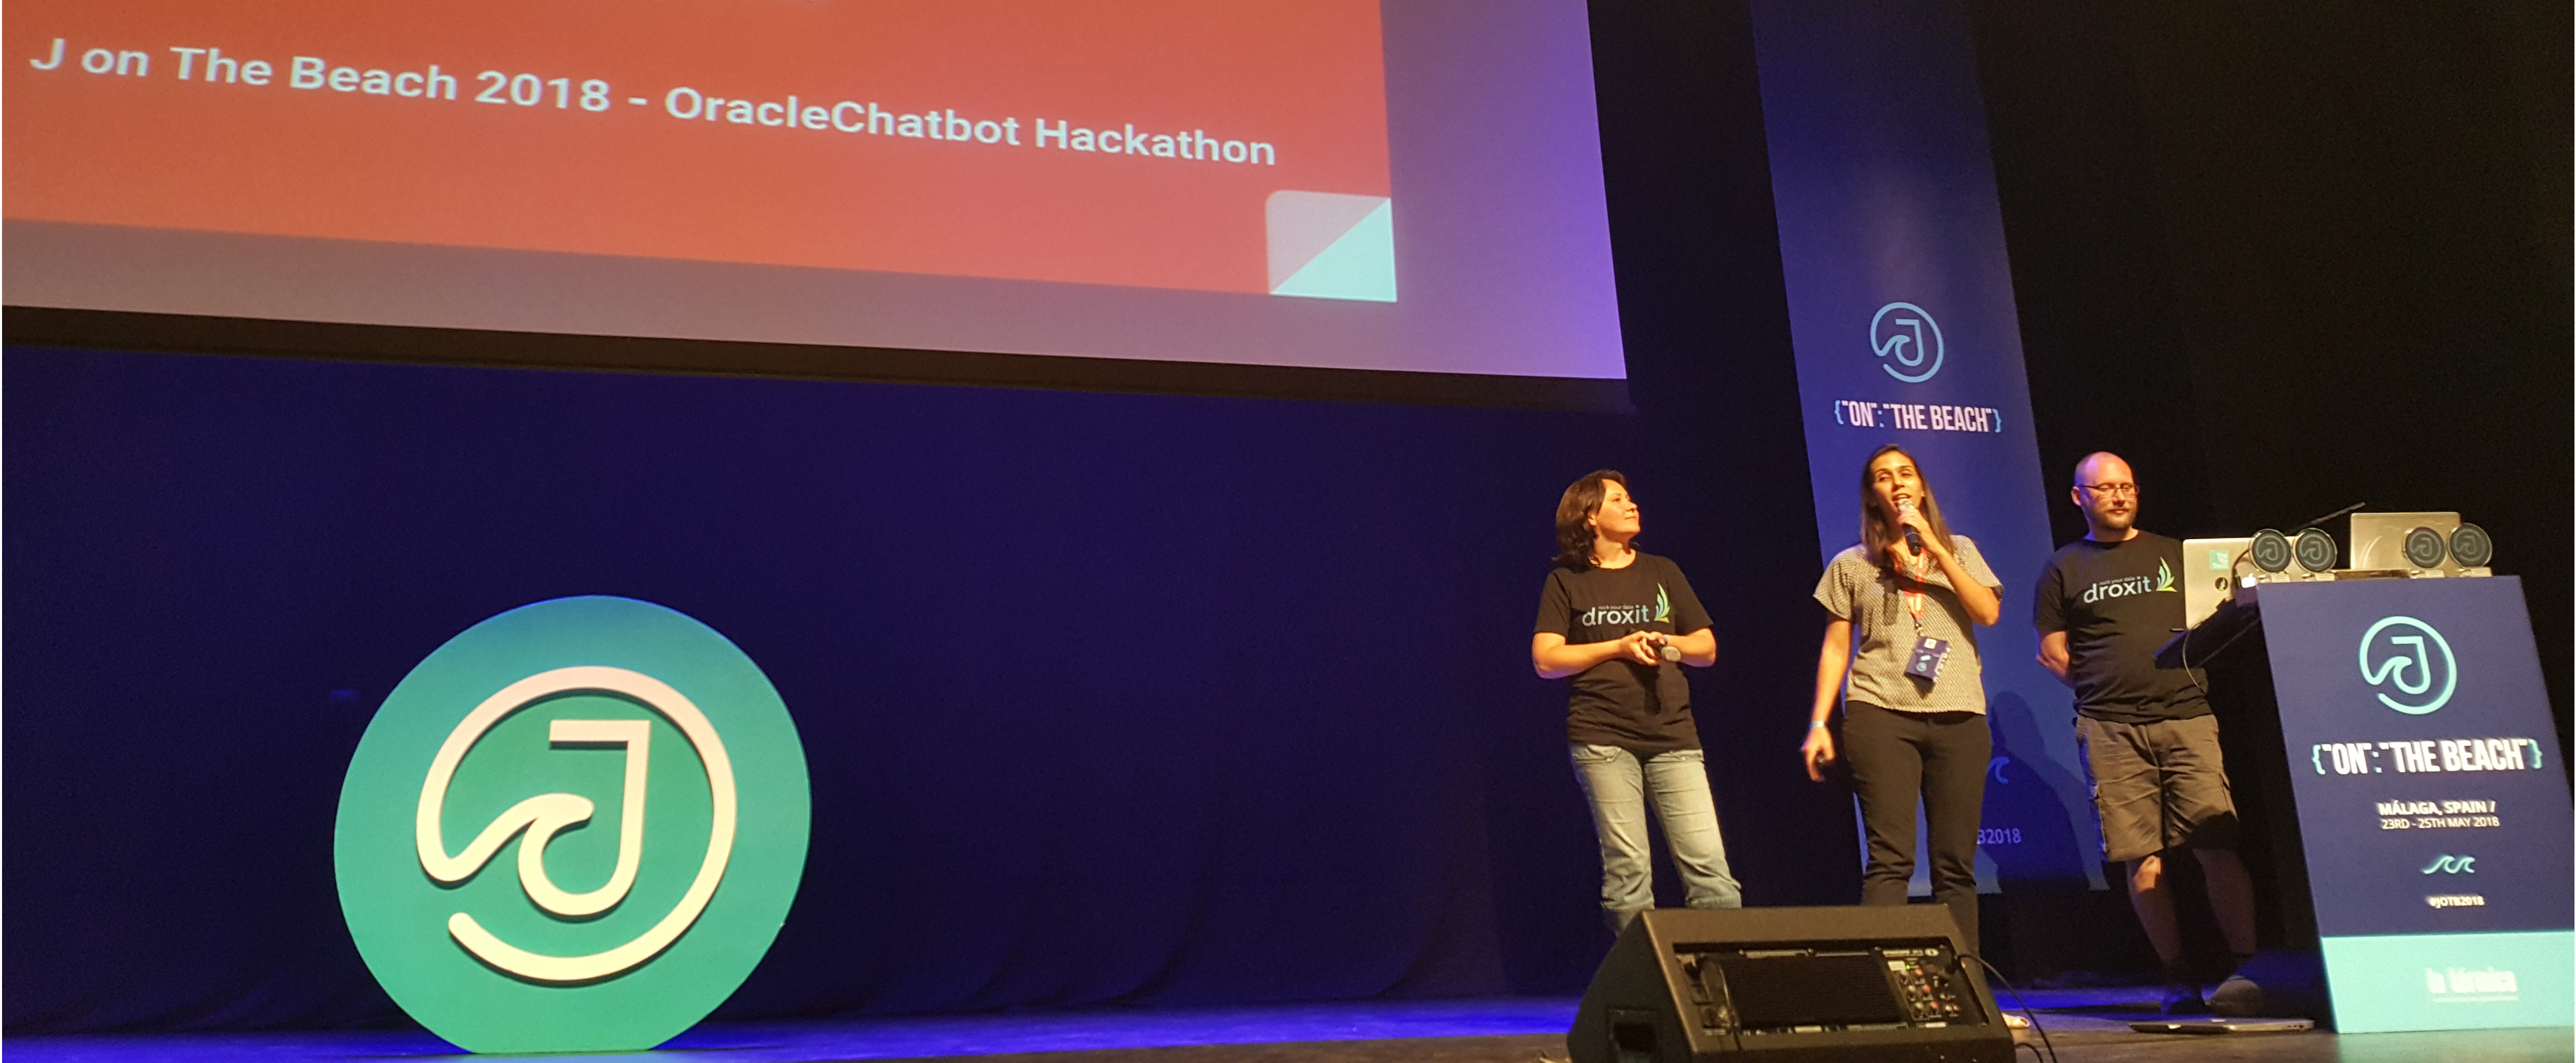 droxIT räumt beim J on The Beach 2018 Hackathon ab